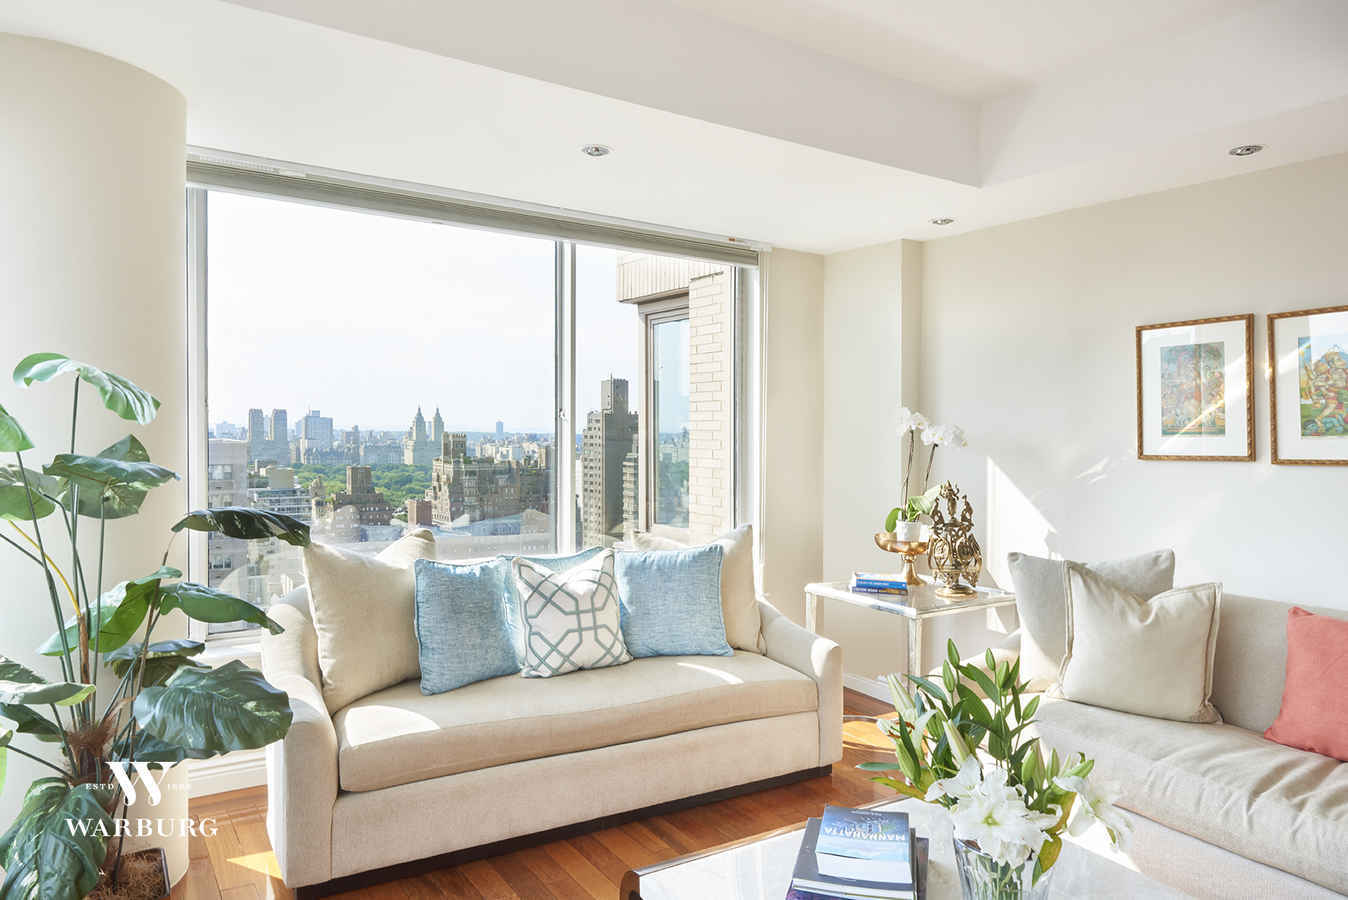 Apartment for sale at 200 East 69th Street, Apt 30C